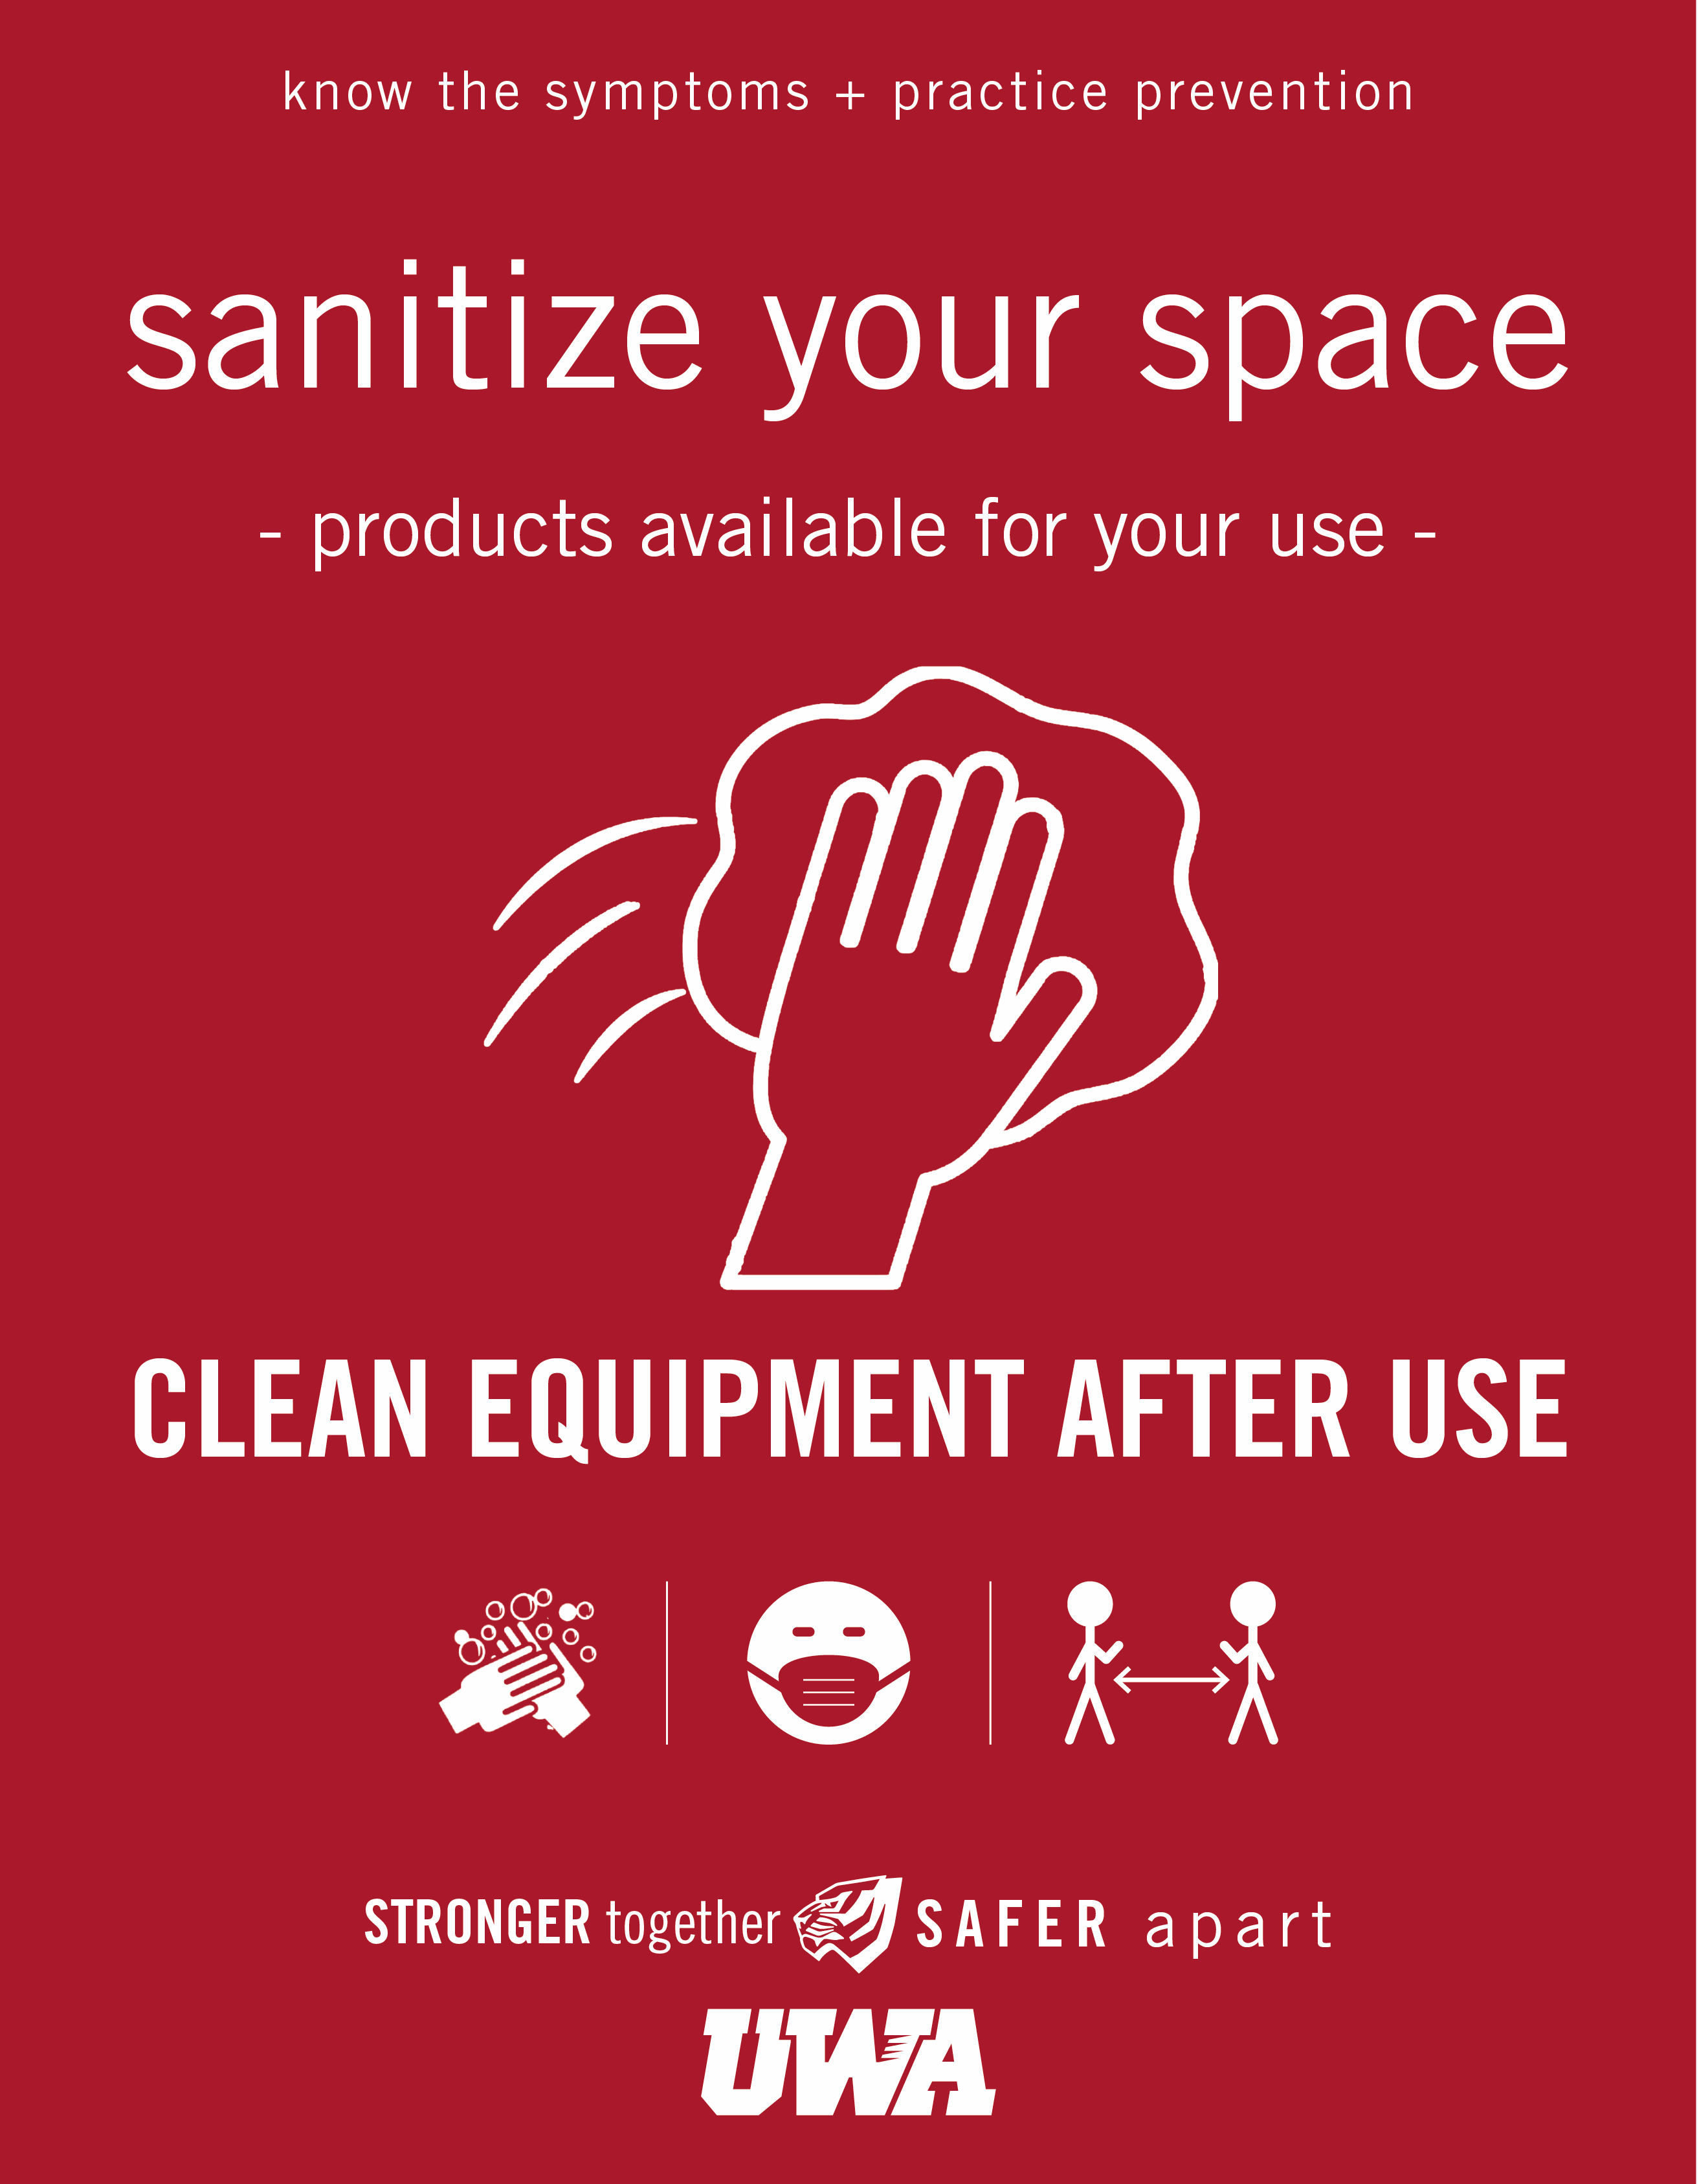 UWA Campus COVID Safety Sanitize